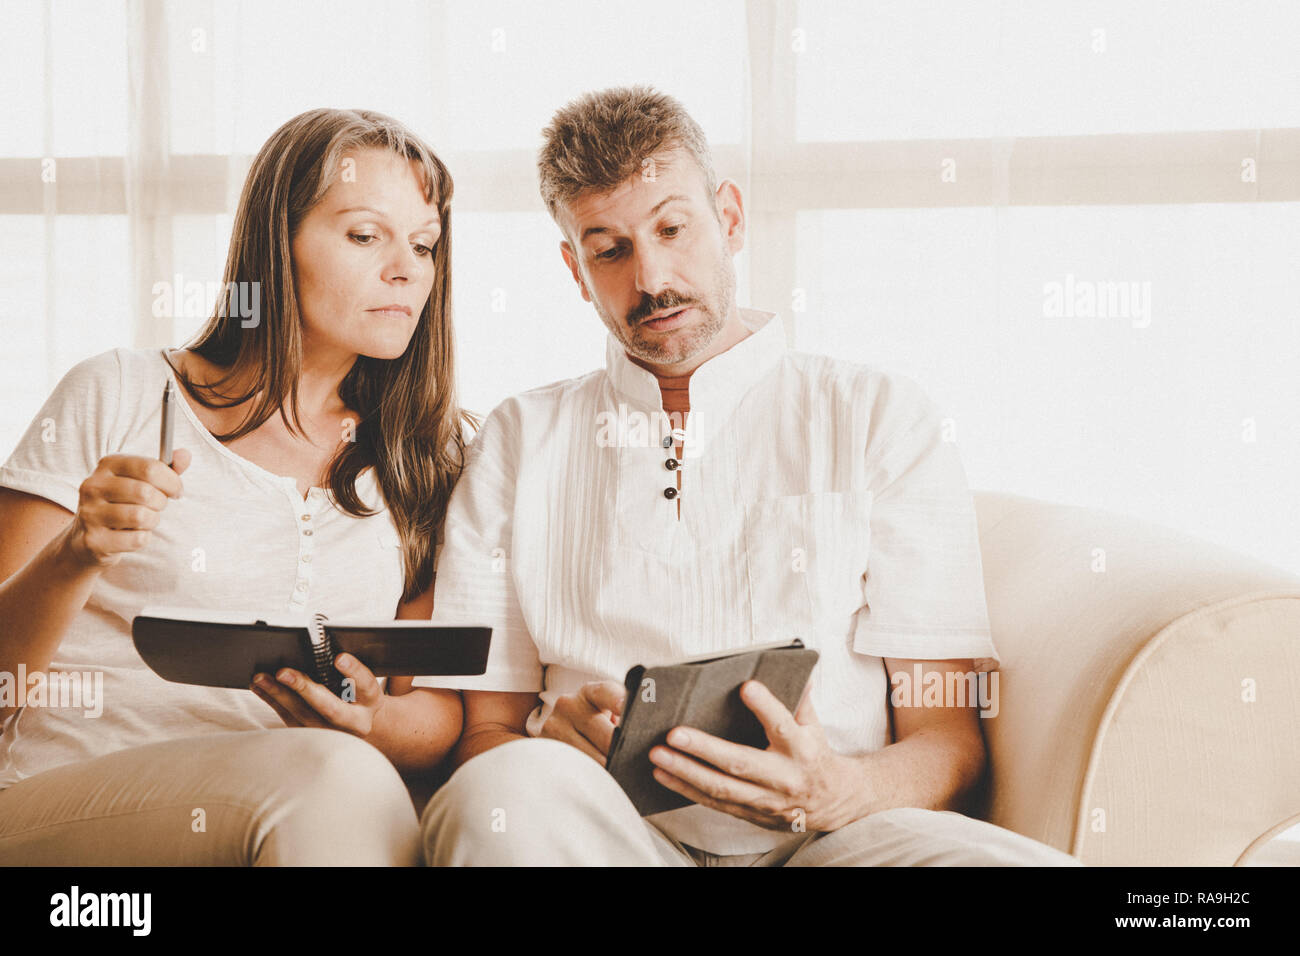 Husband and wife on a couch in their apartment with a tablet and a notepad - Stock Image